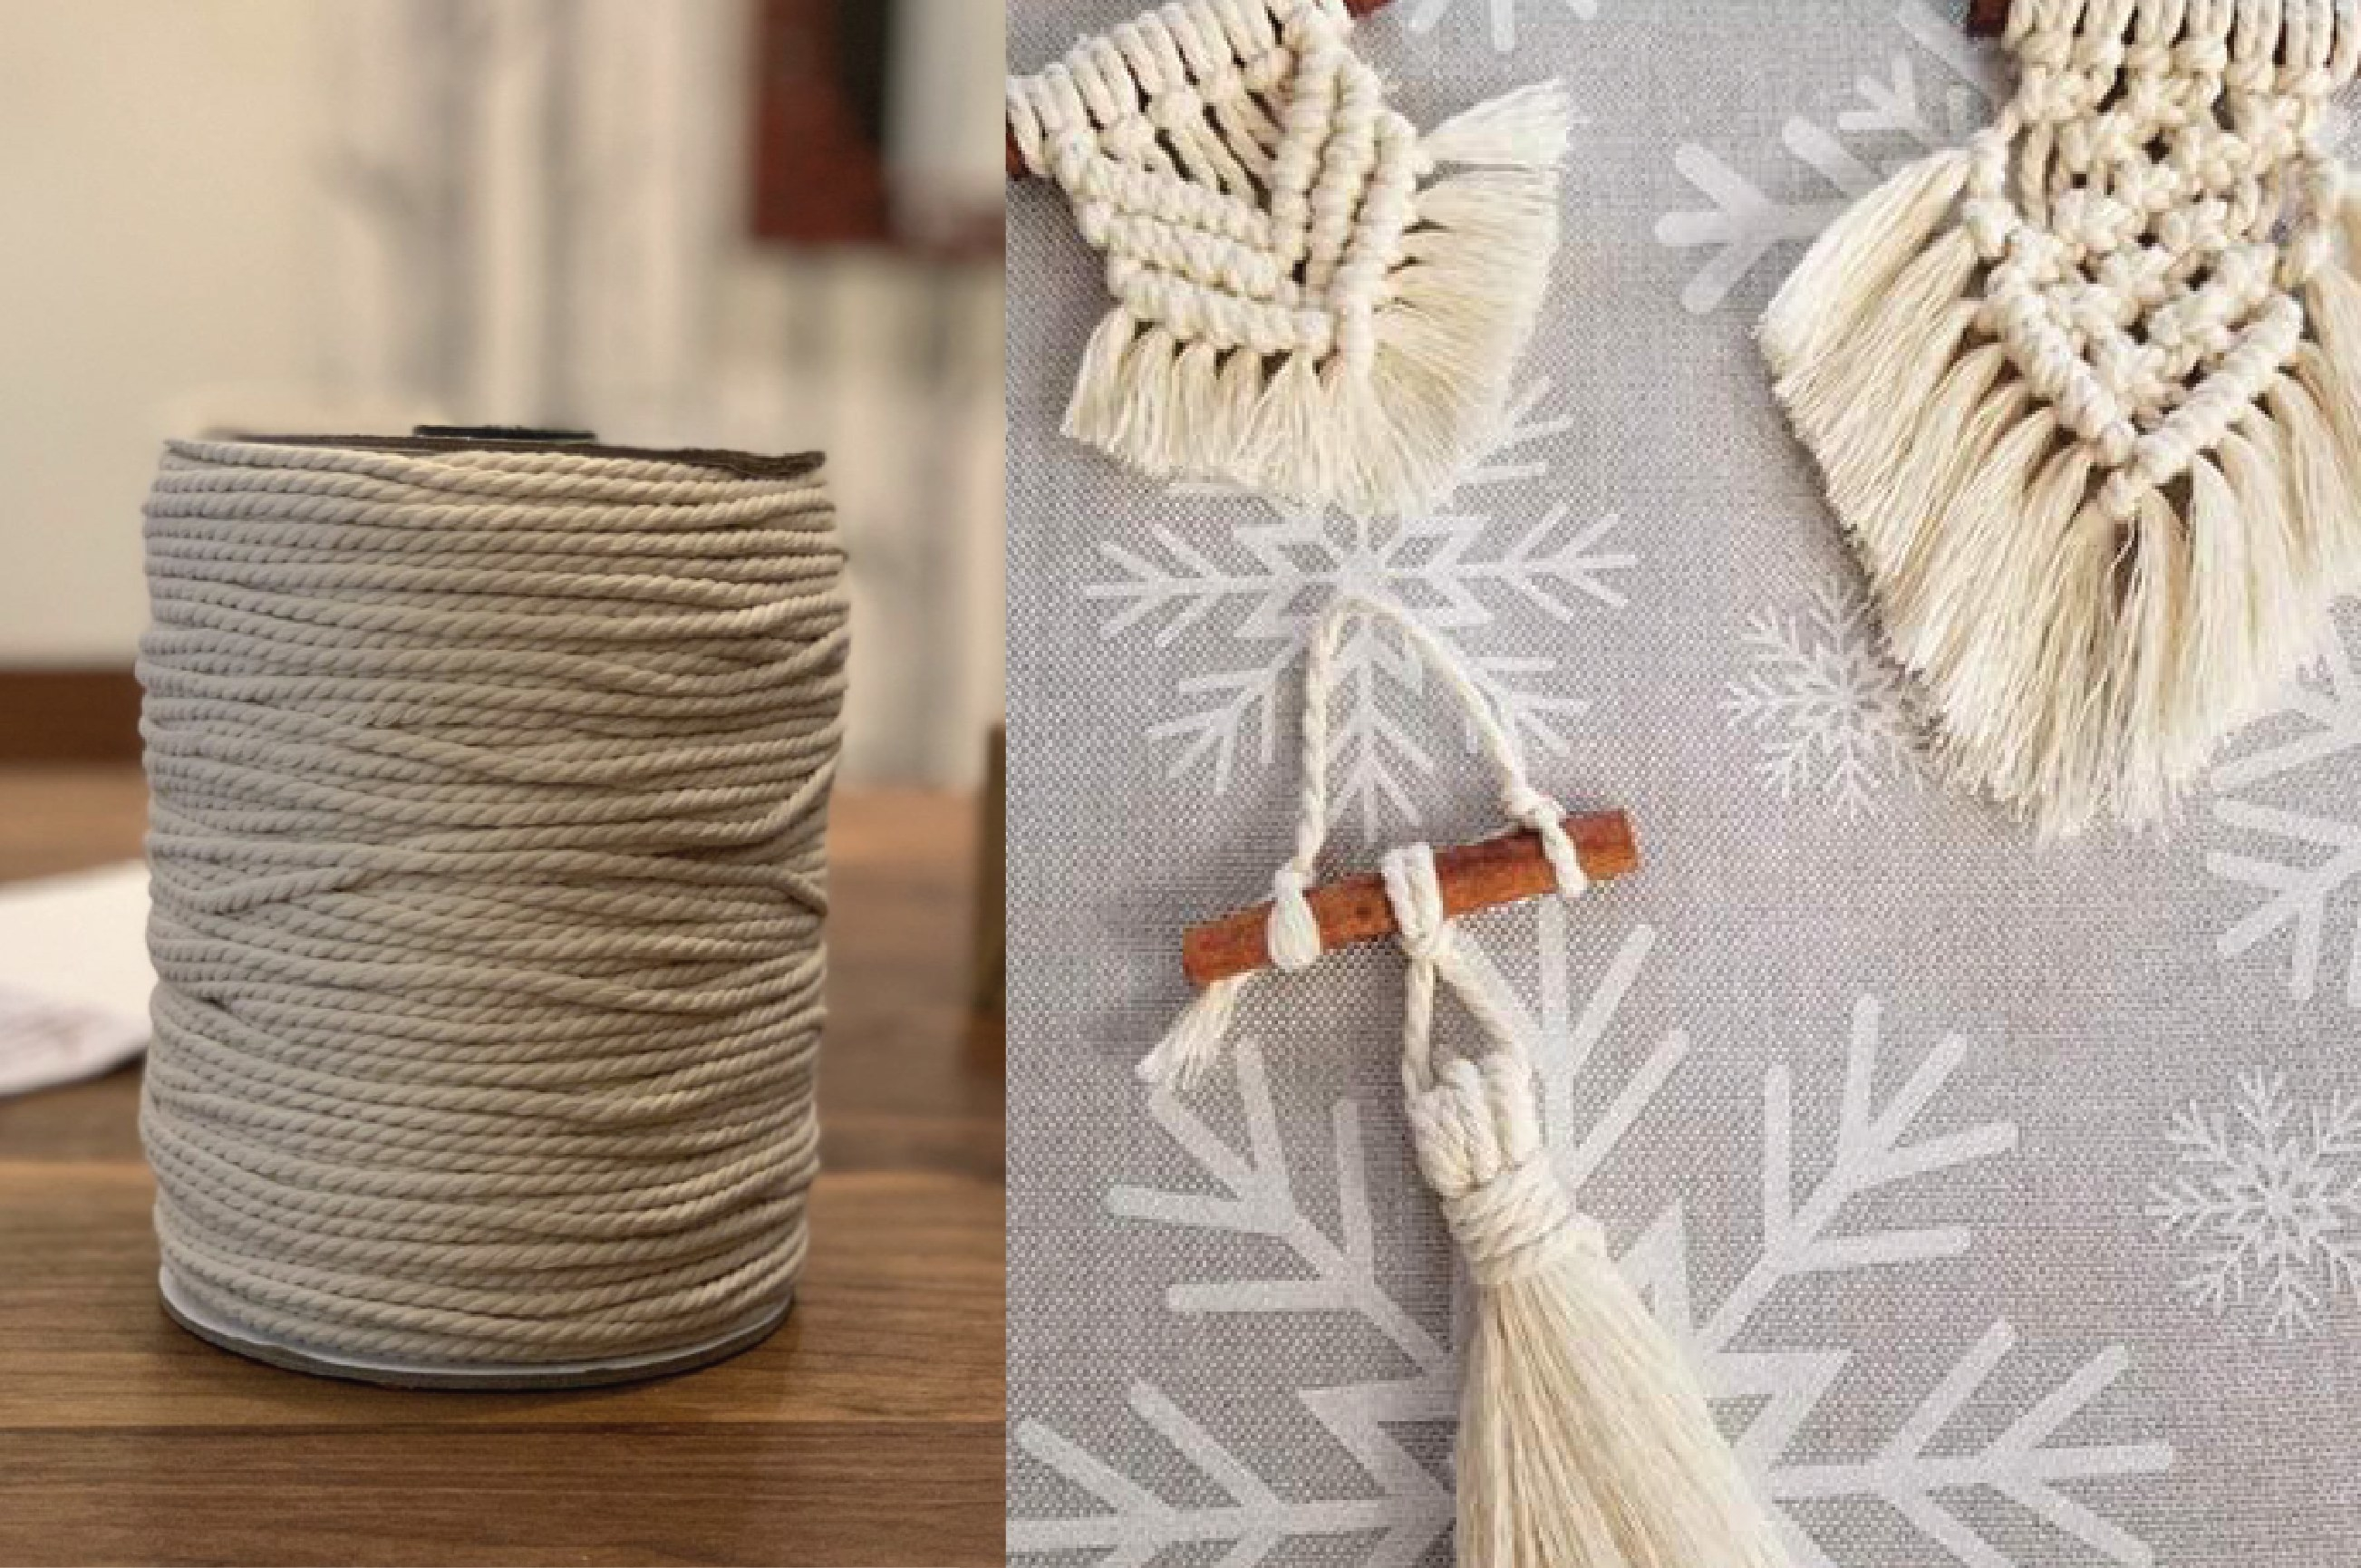 The roll of macrame rope with examples of designs